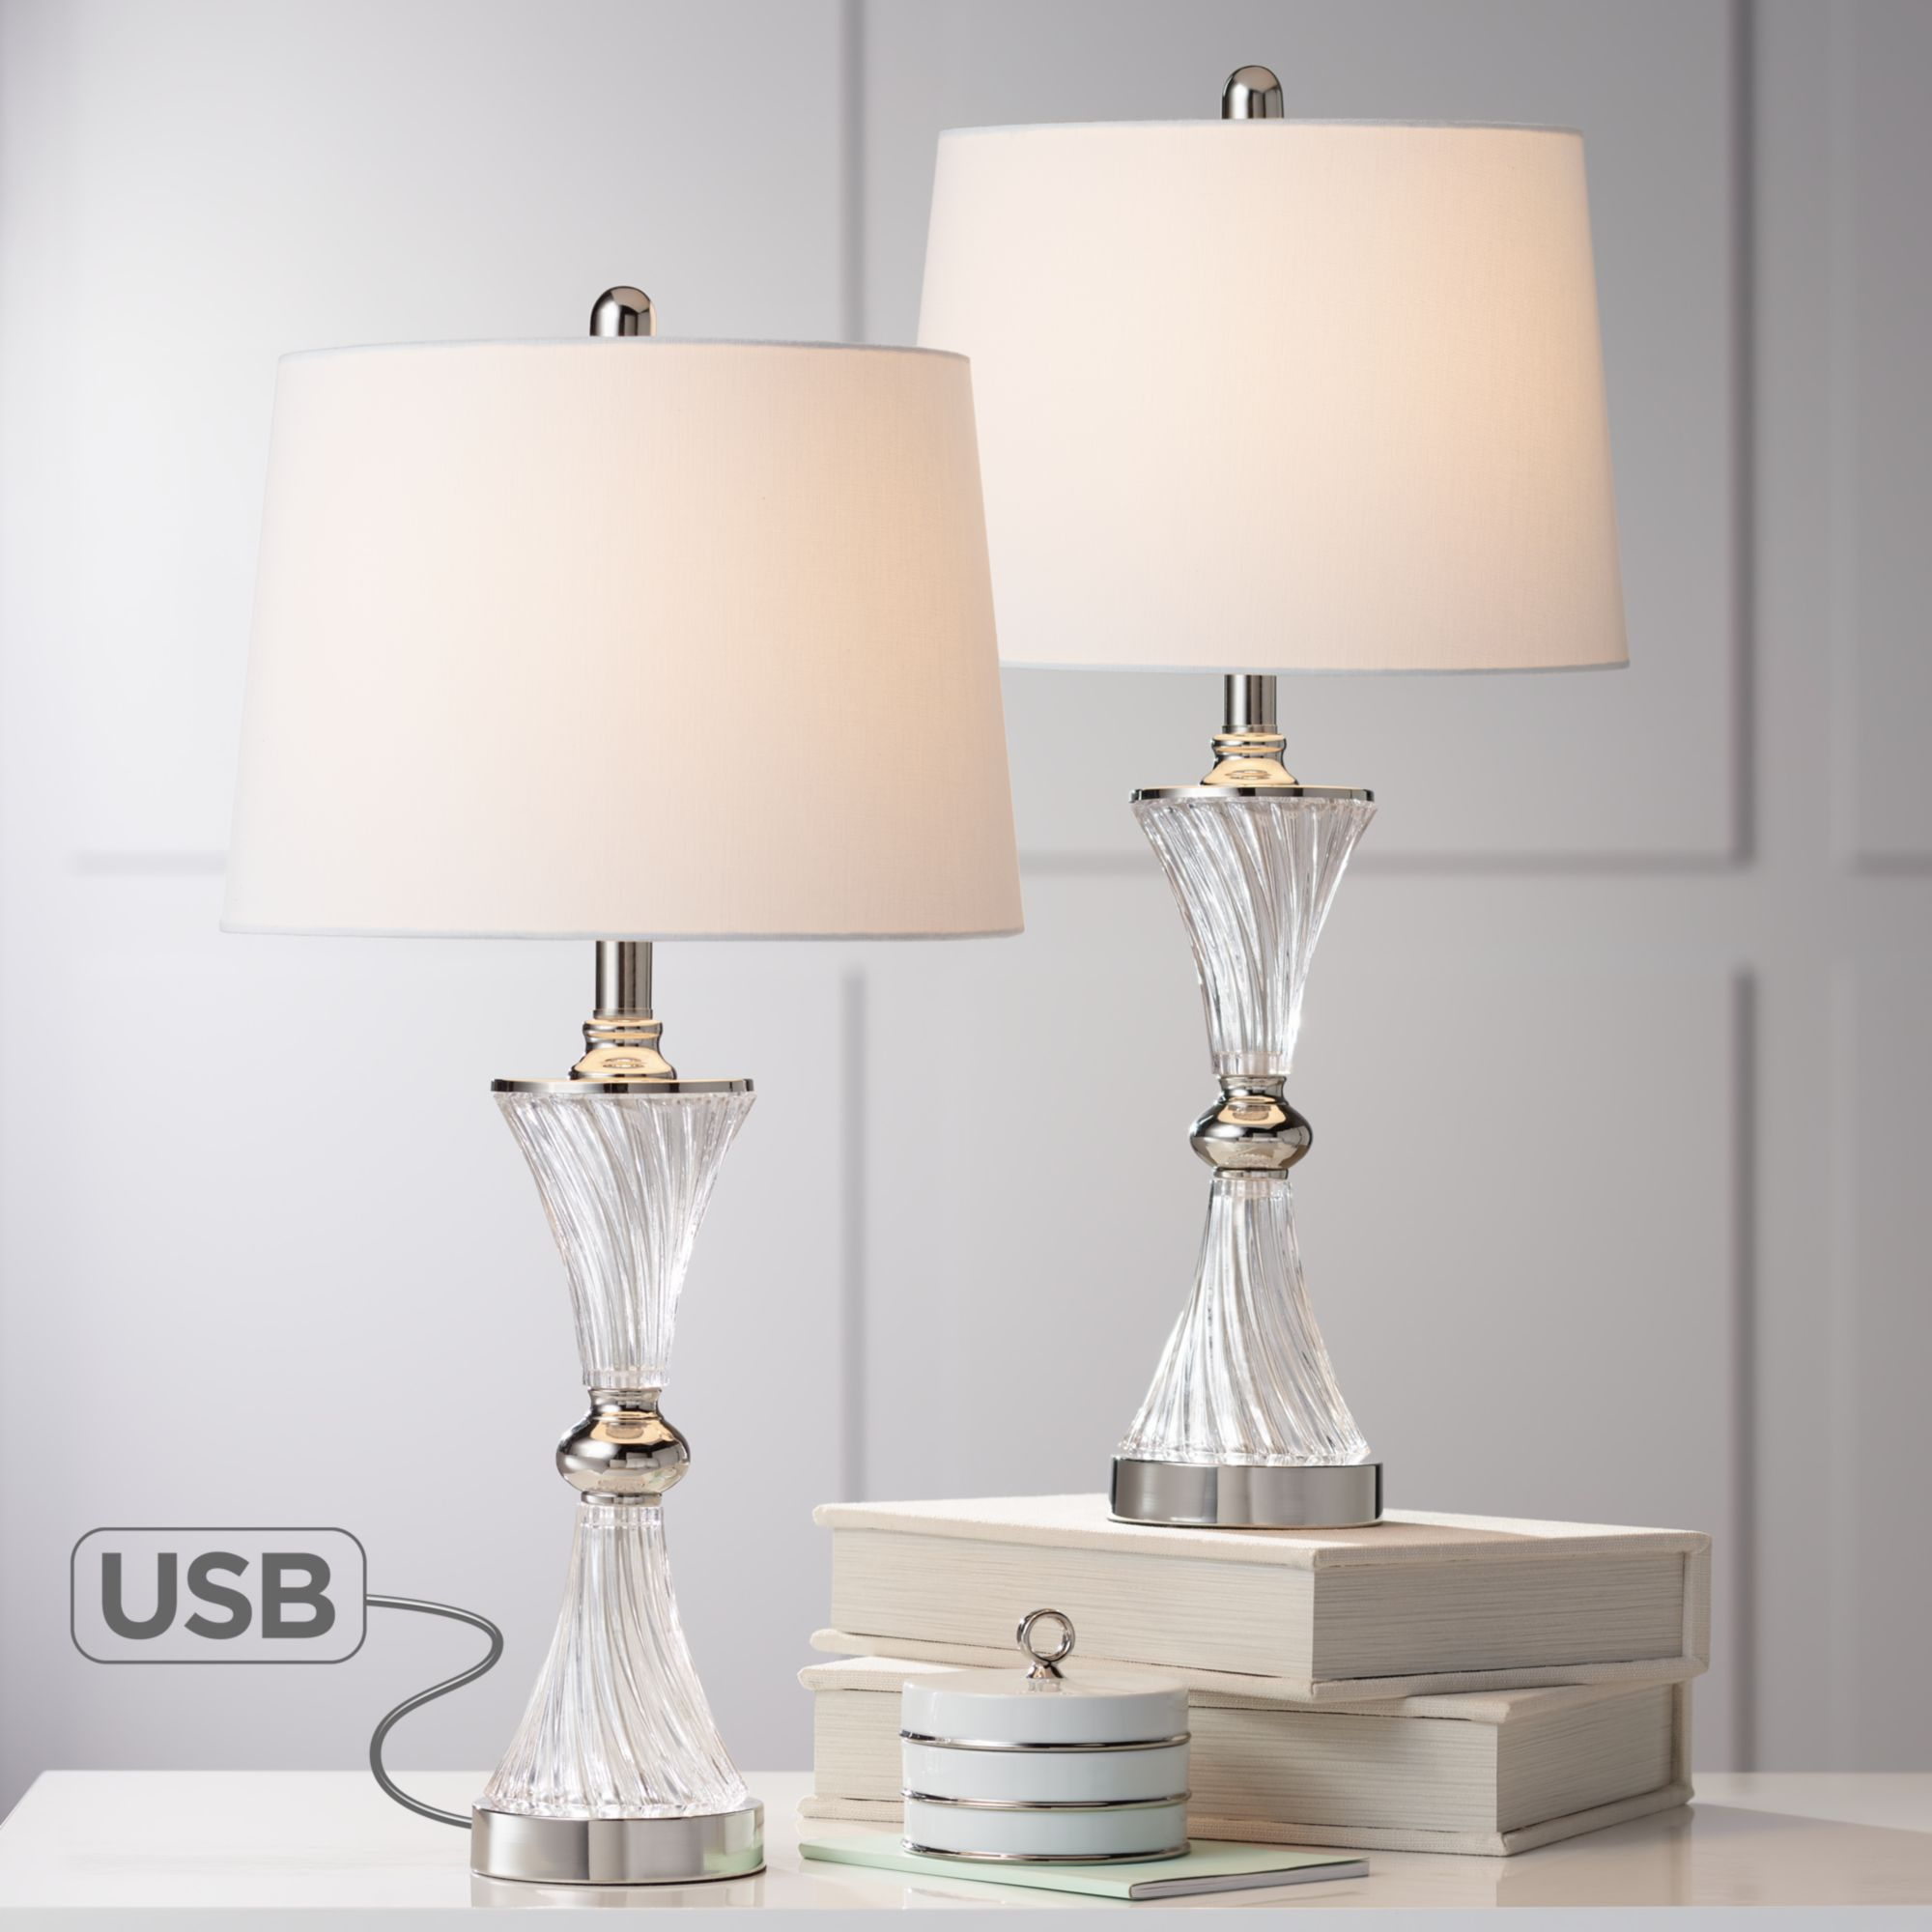 nightstand lamps with usb touch regency hill modern table lamps set of with usb charging port chrome and glass drum